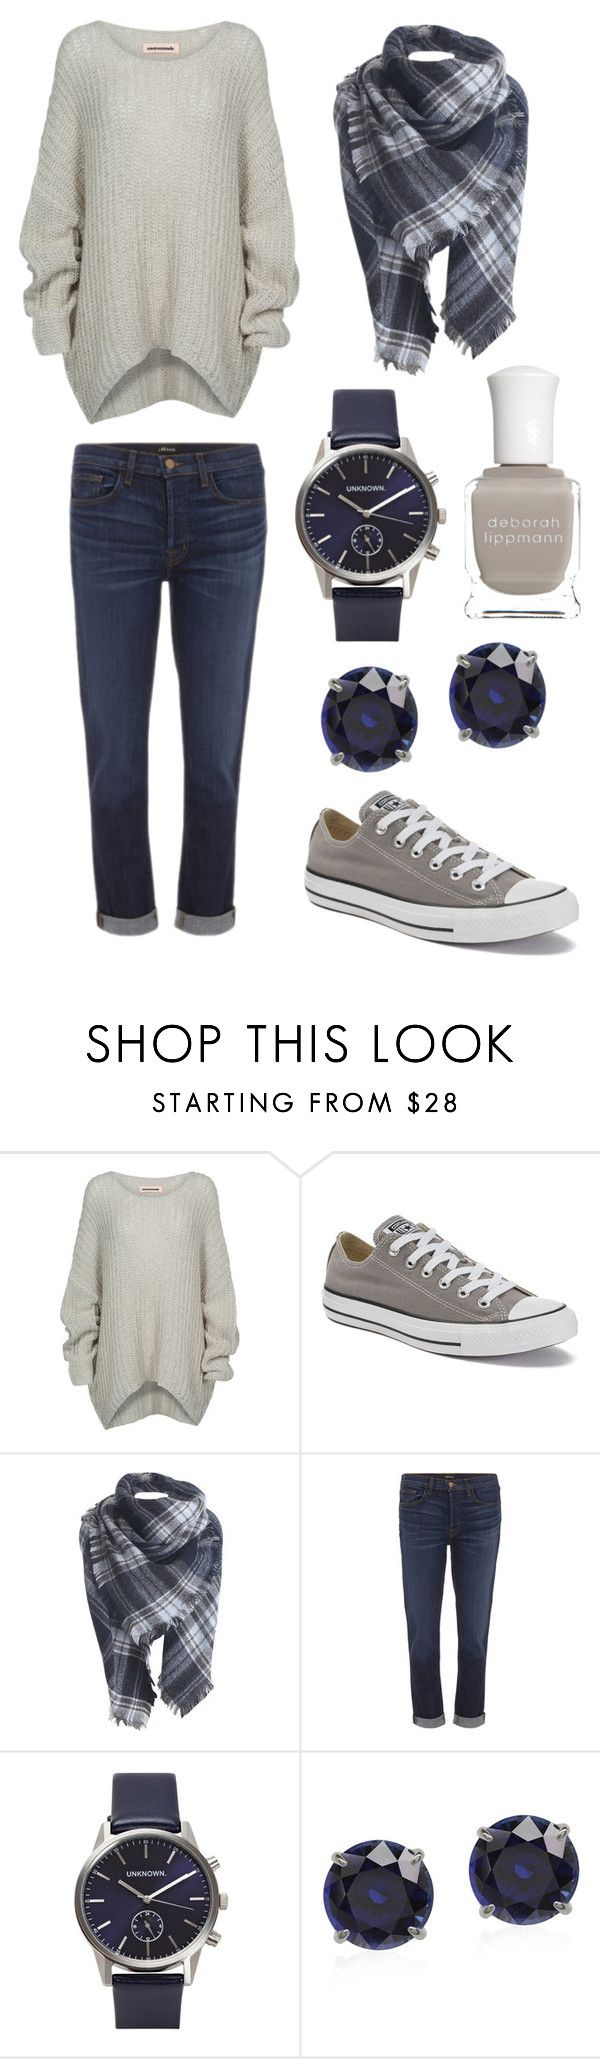 """Blue Grey"" by alphashe on Polyvore featuring Bodhi, Converse, J Brand and Deborah Lippmann"